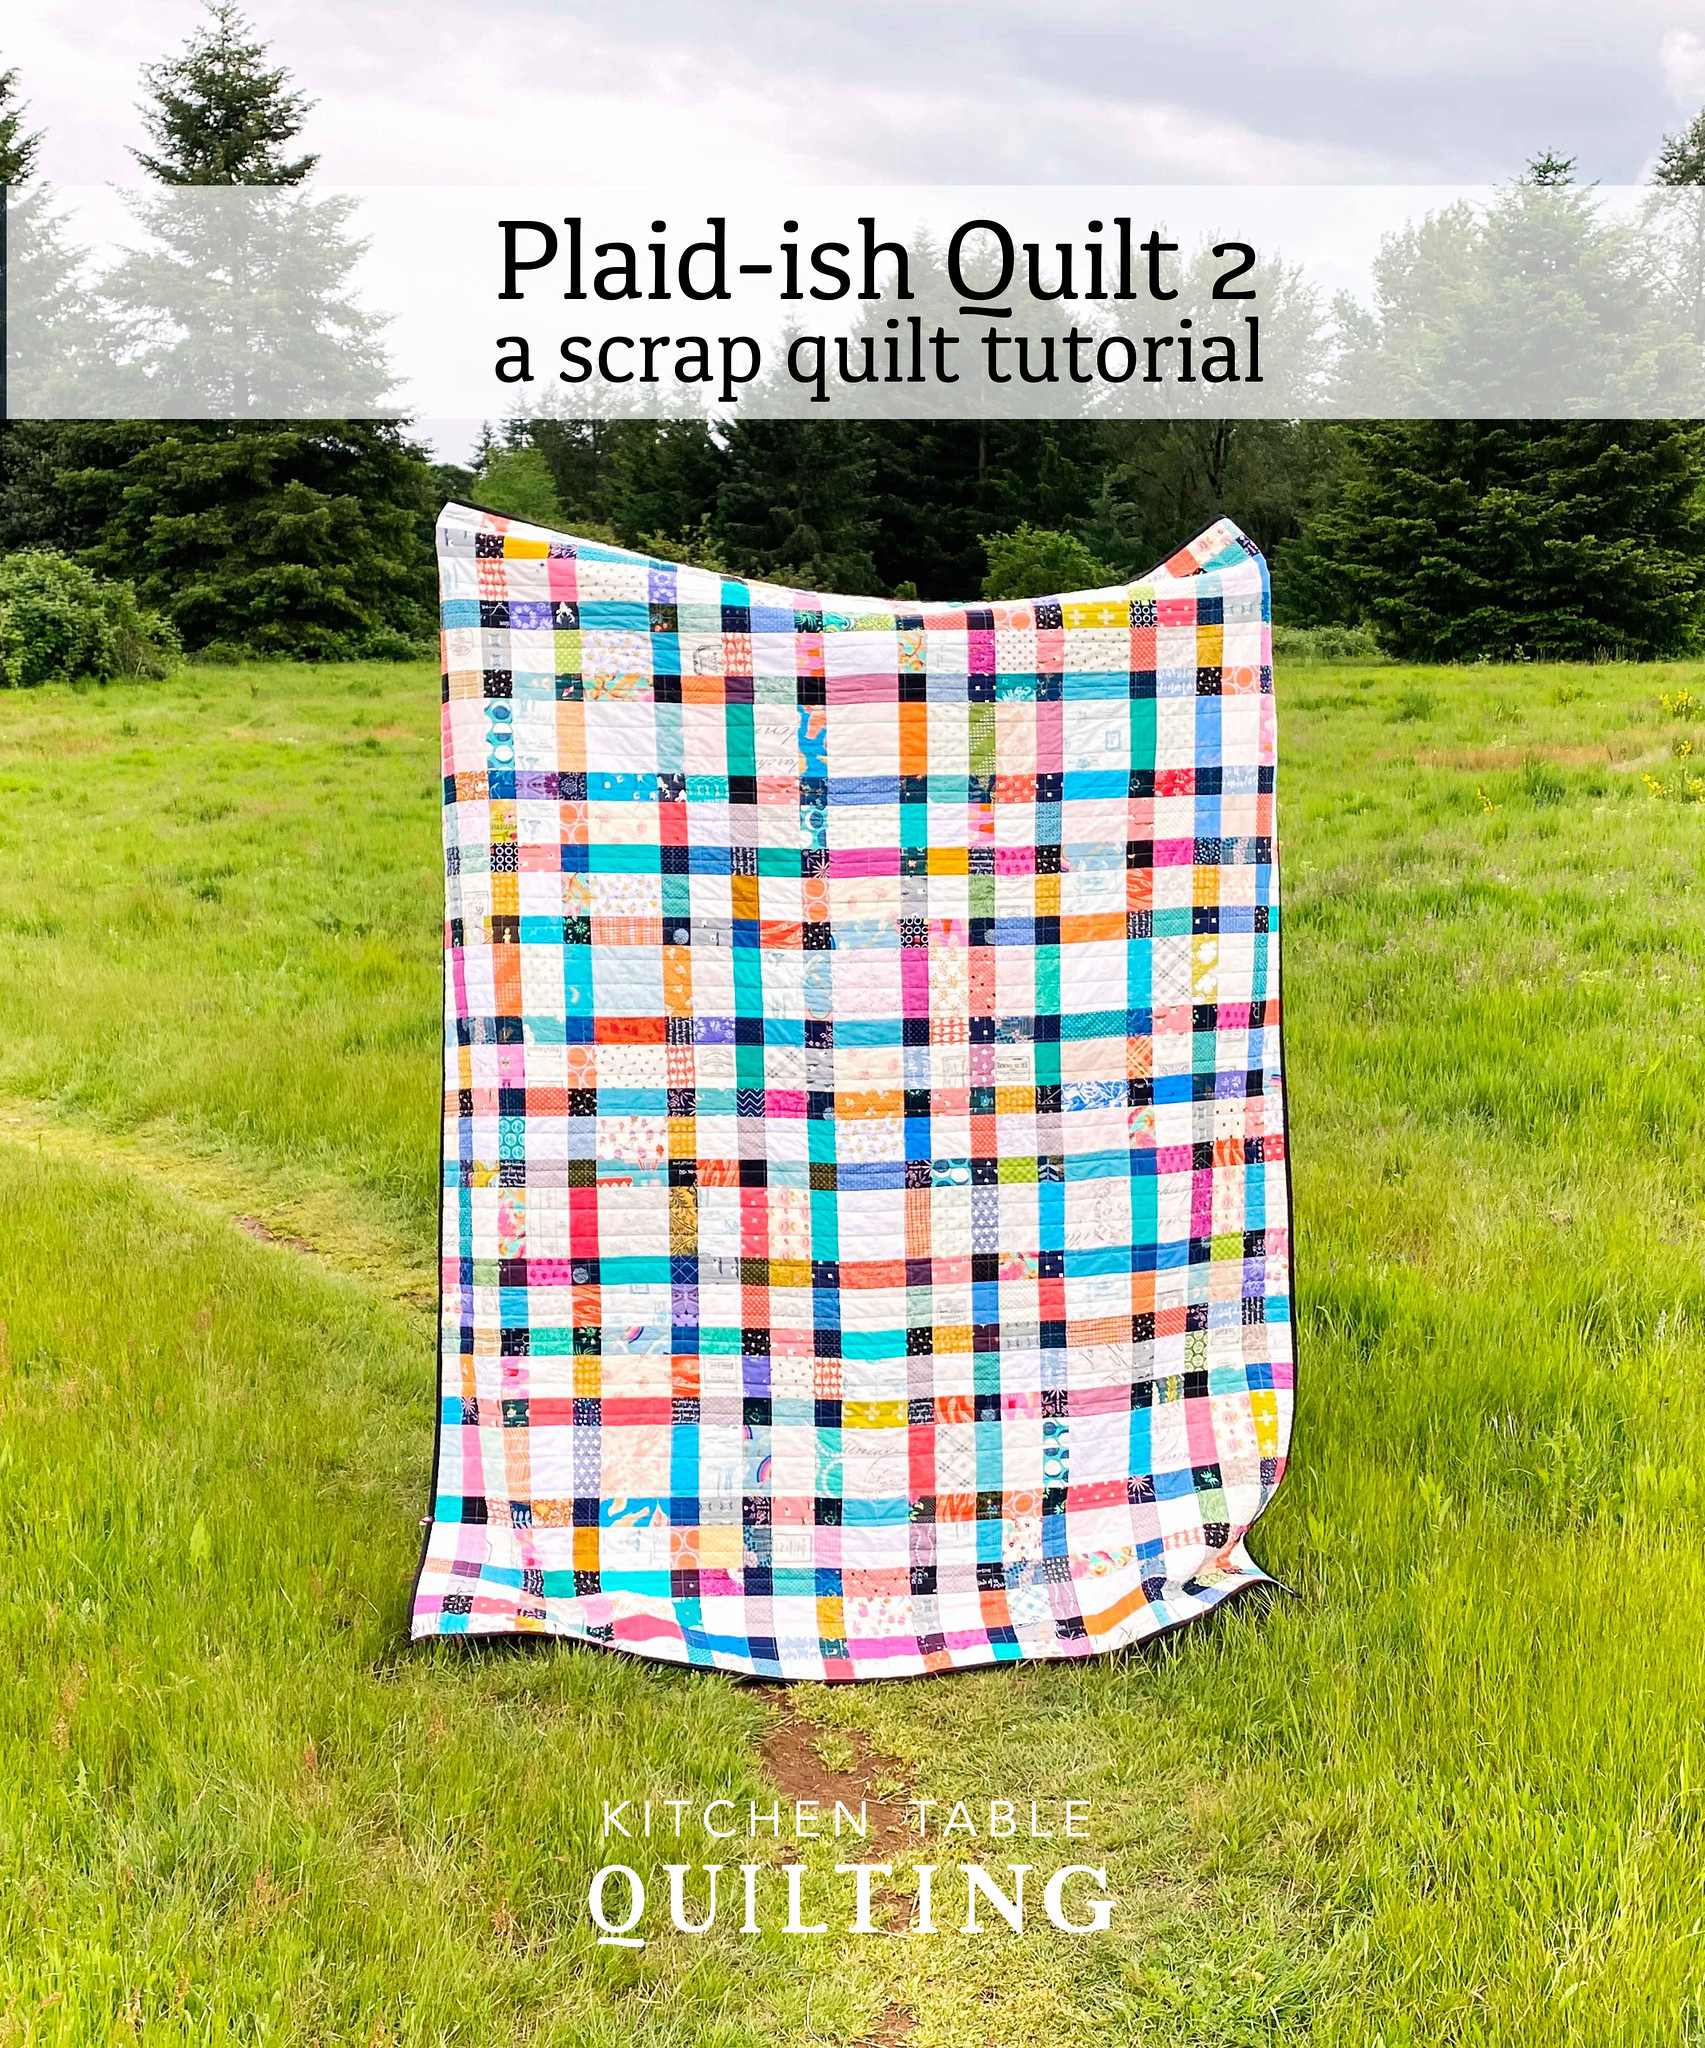 Plaidish Quilt 2 Tutorial - Kitchen Table Quilting